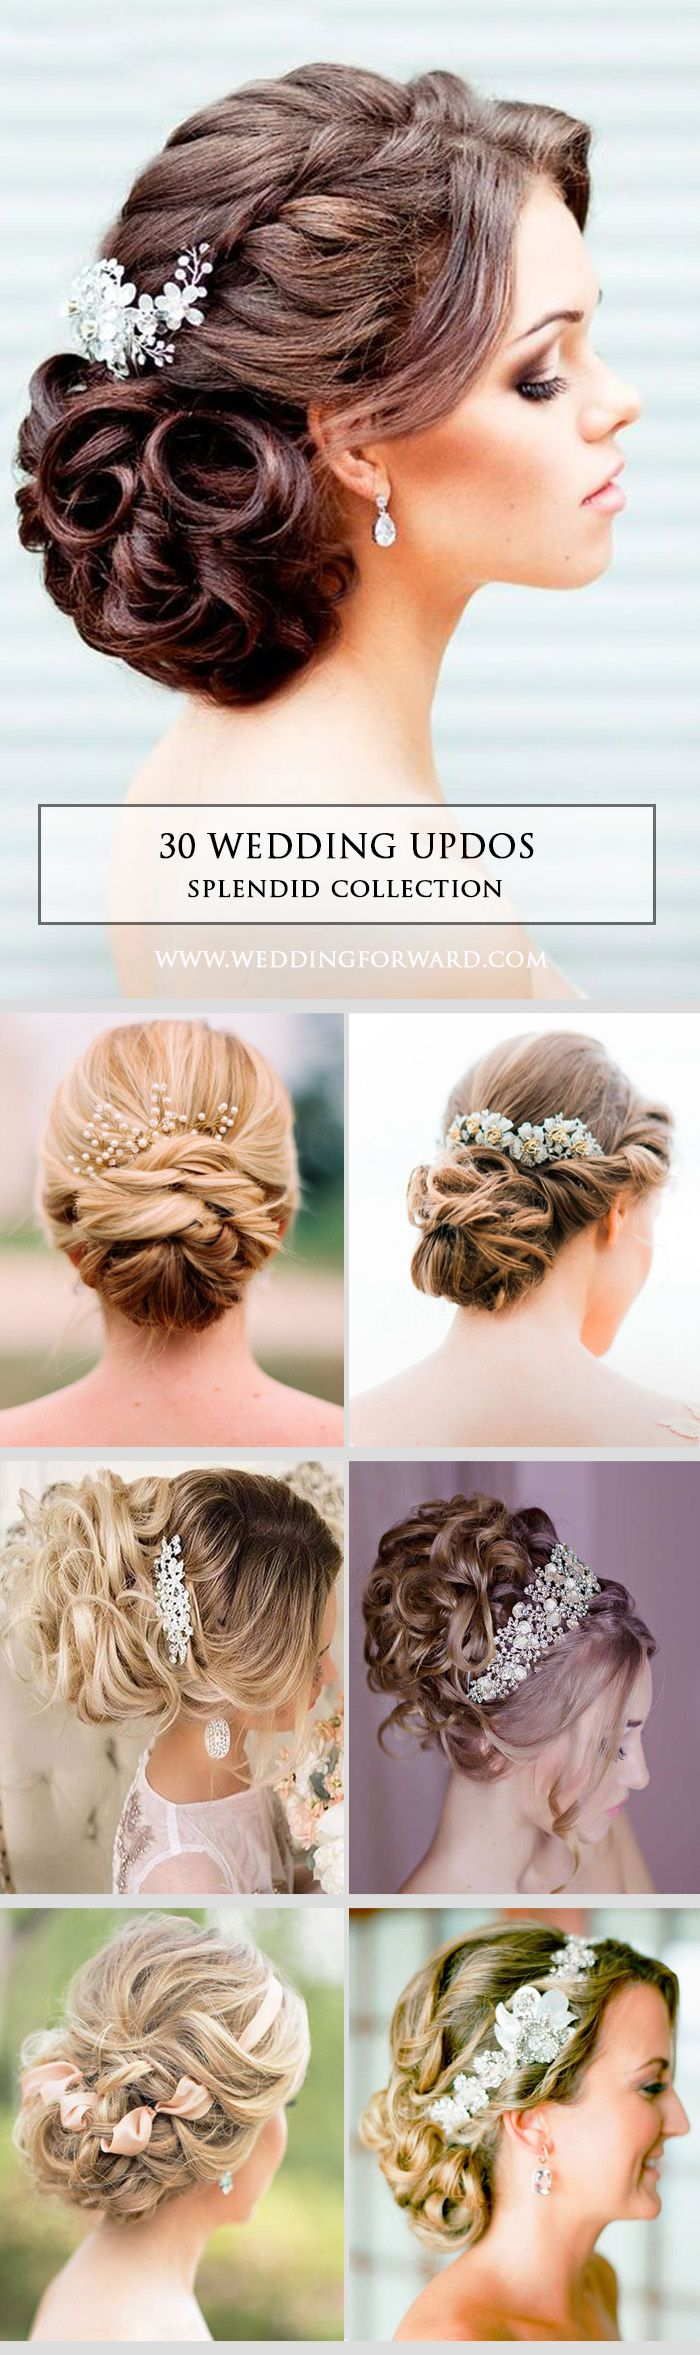 Splendid Wedding Updos Collection ❤ If you are looking for the perfect hairsty...